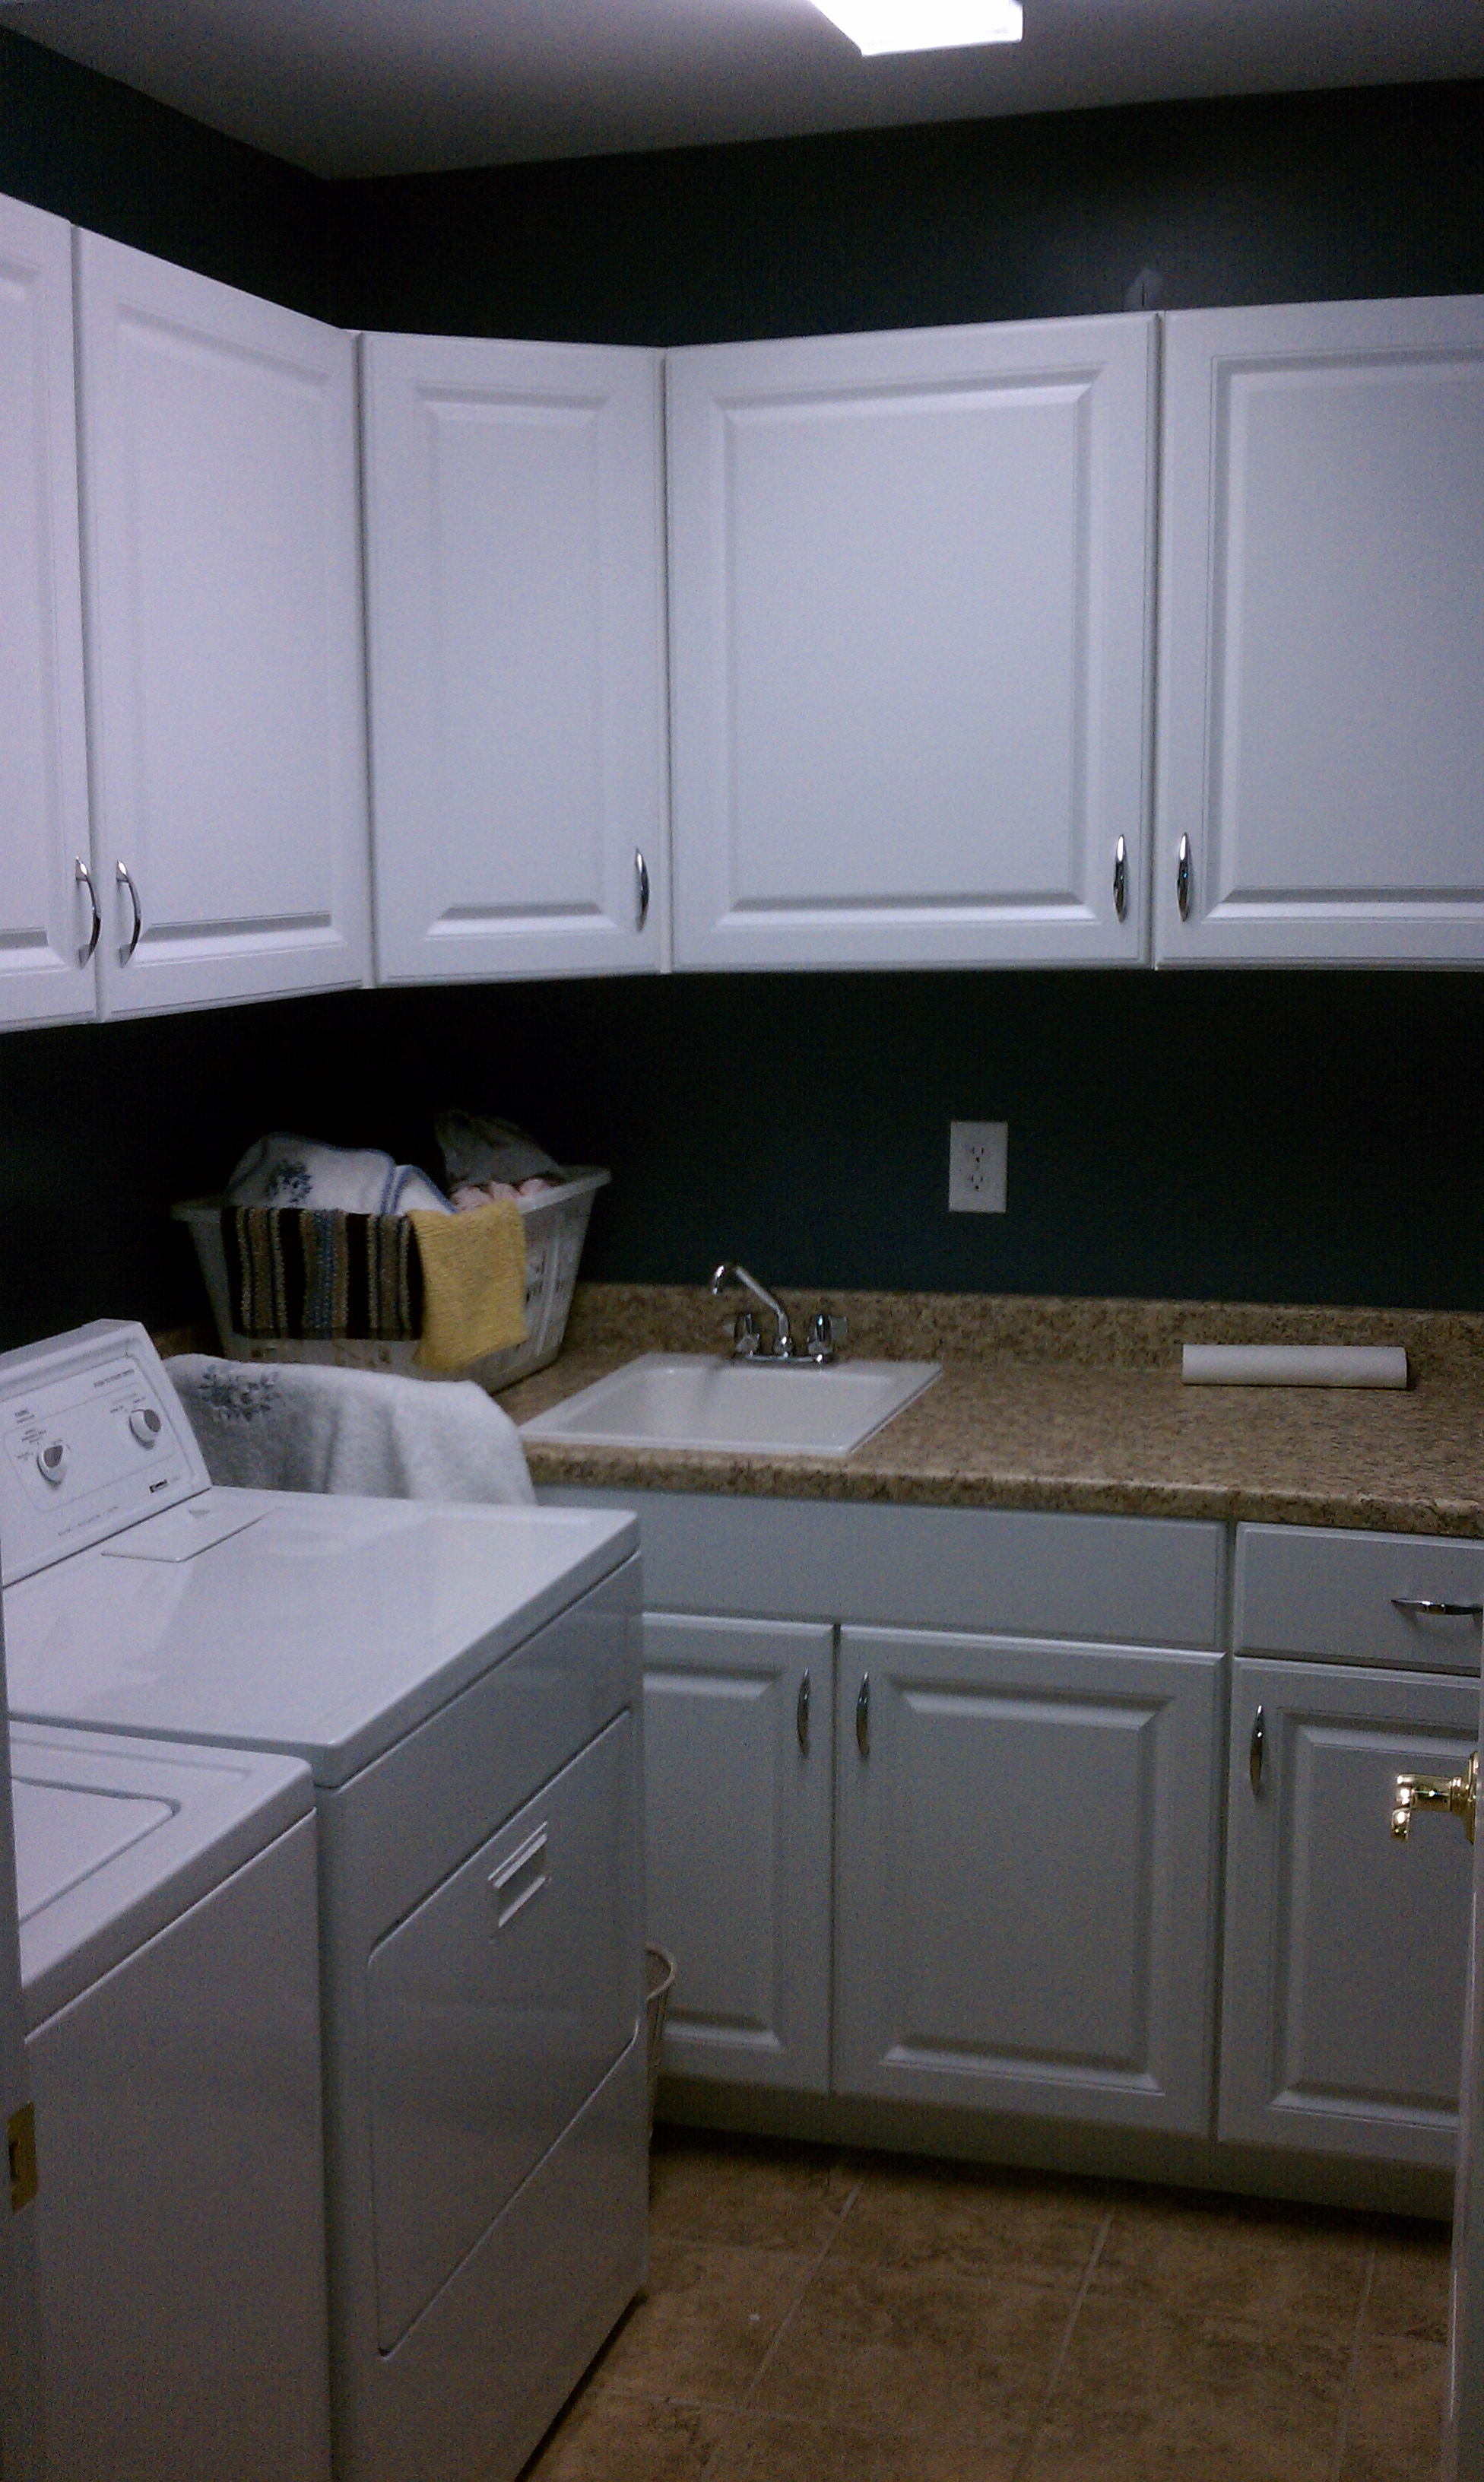 Fayetteville Cabinets Installation